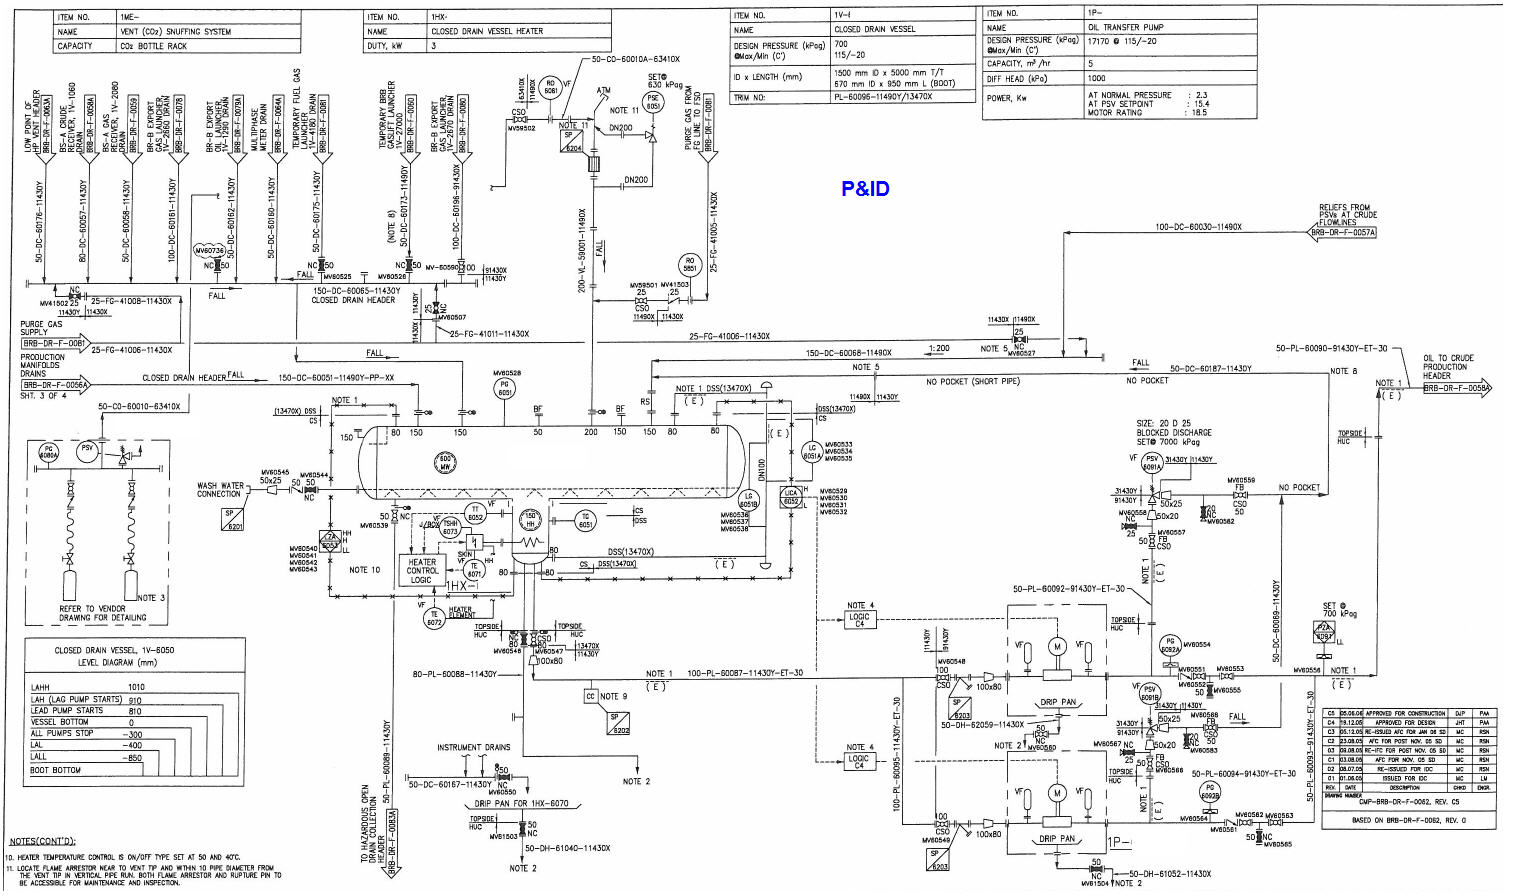 Piping And Instrumentation Diagram Jobs Wiring Diagrams Schematics - Wiring Diagram